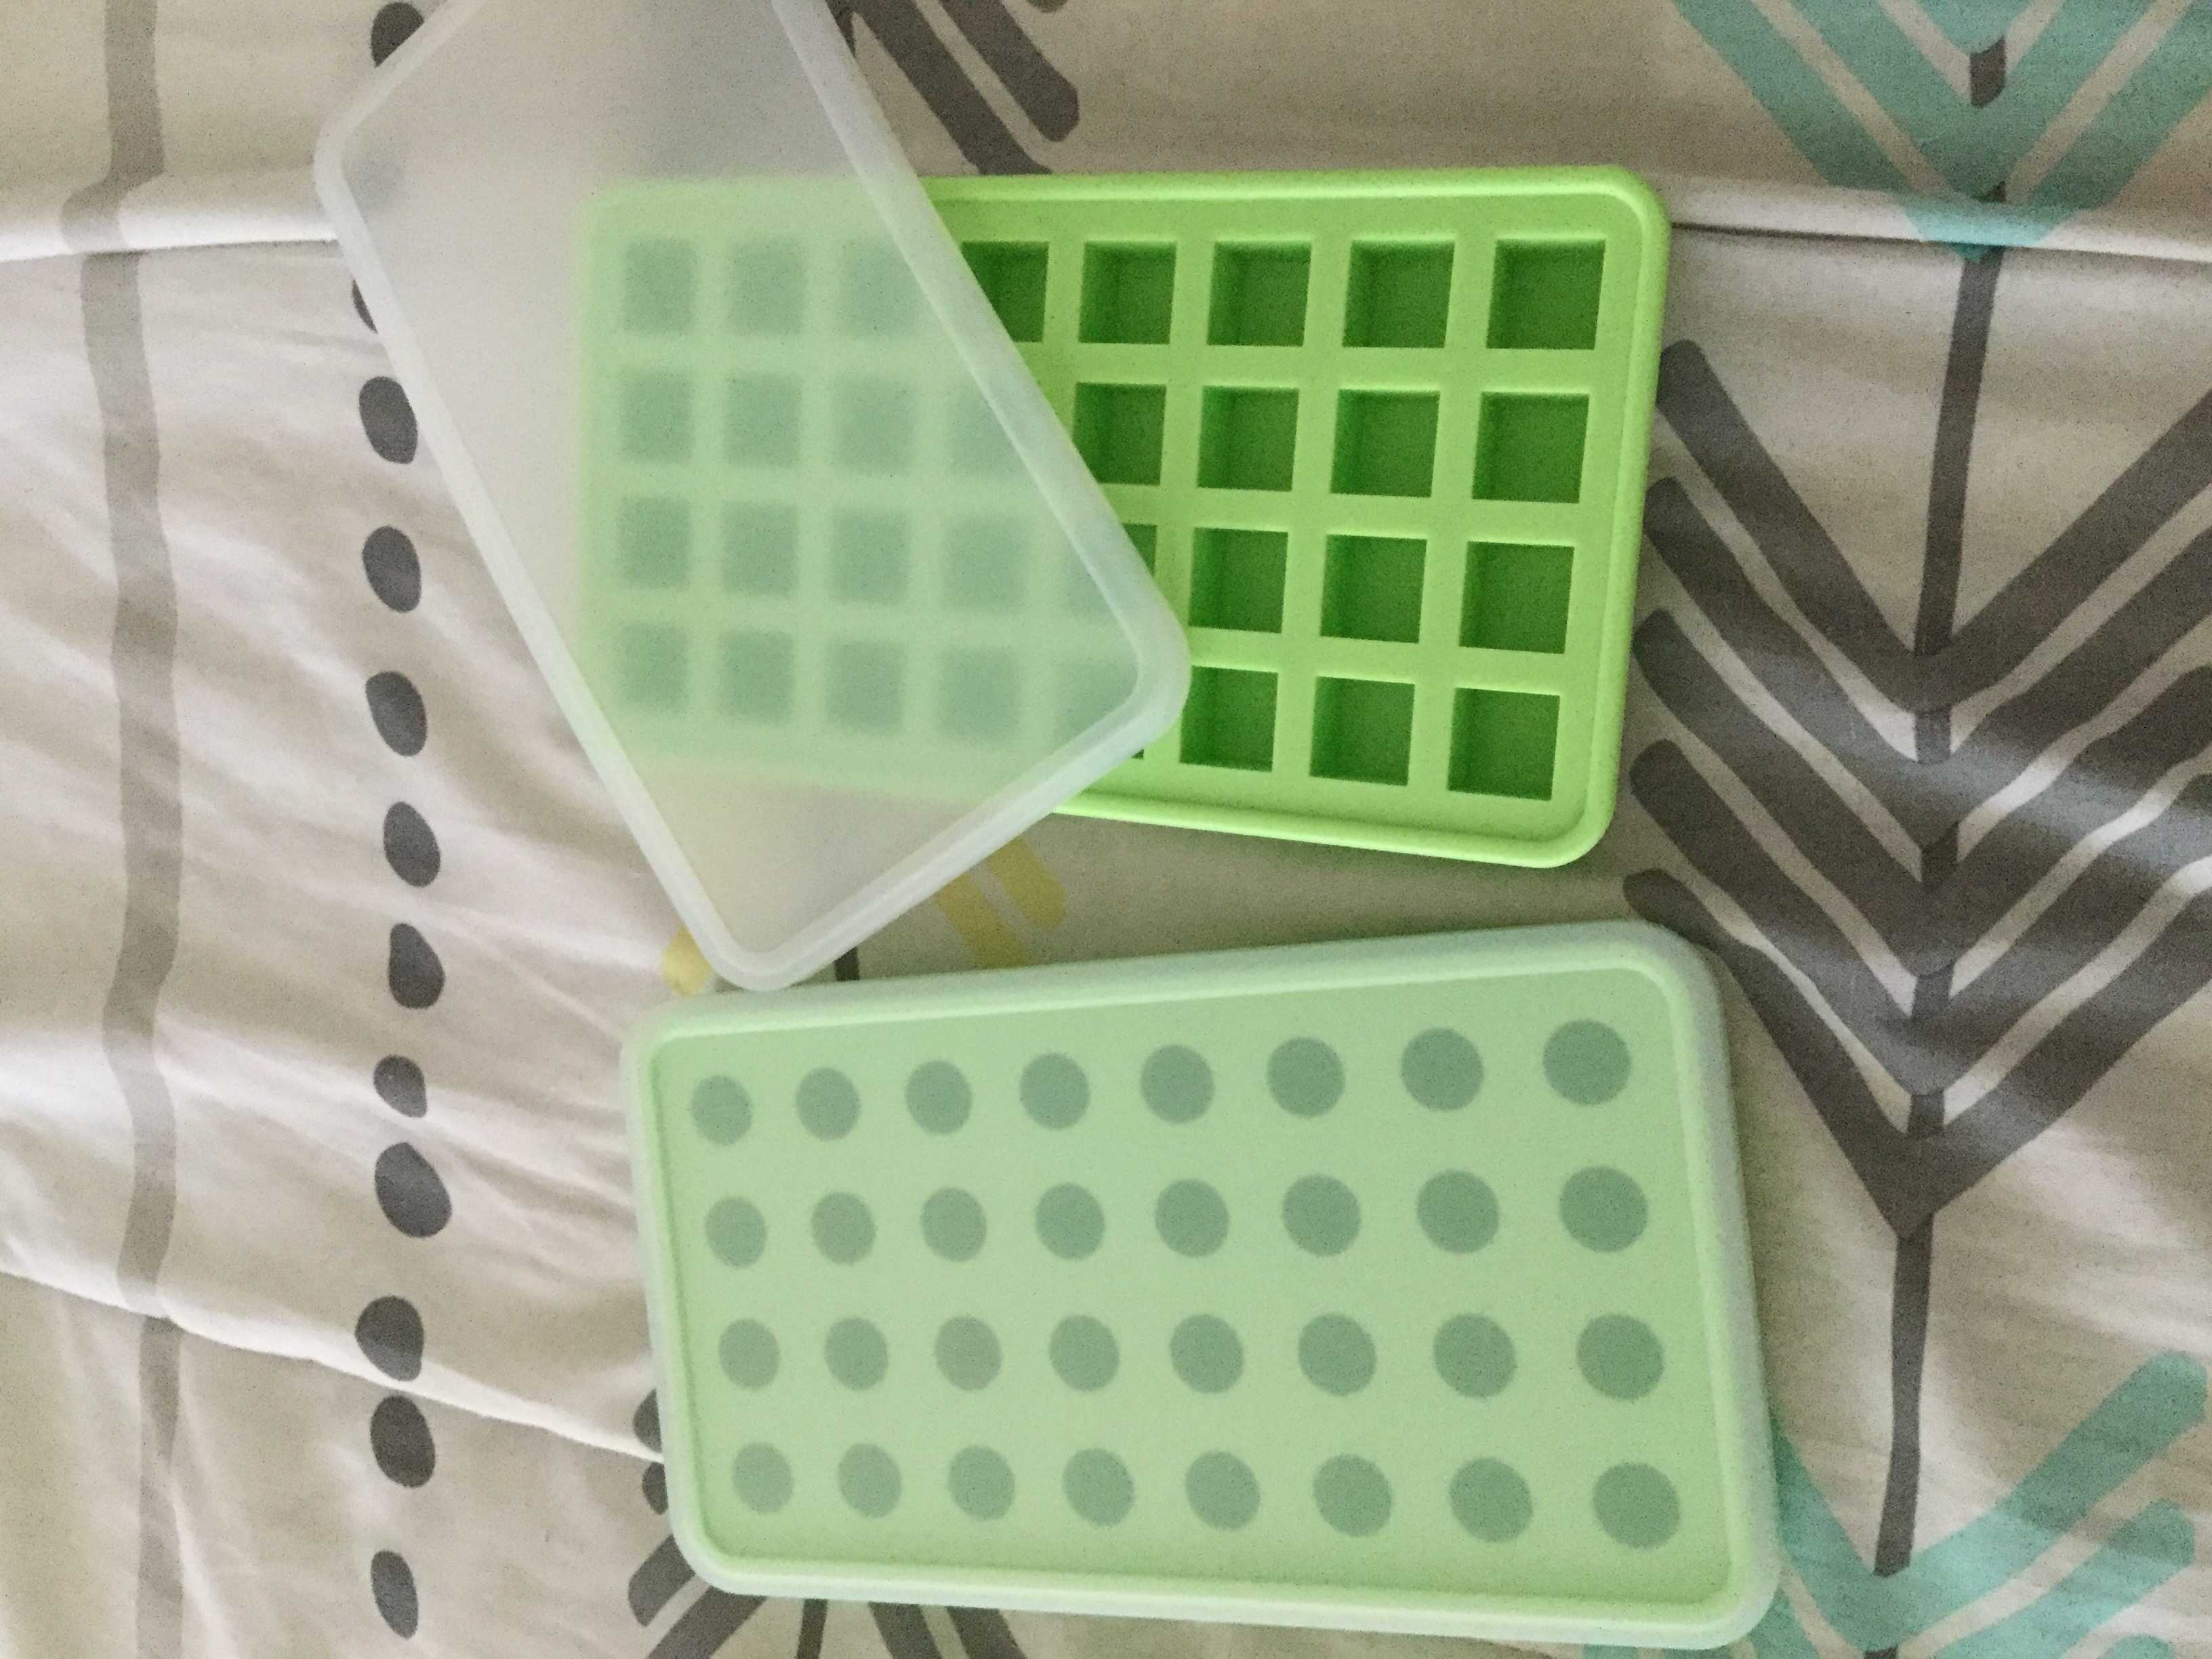 Great molds or ice trays